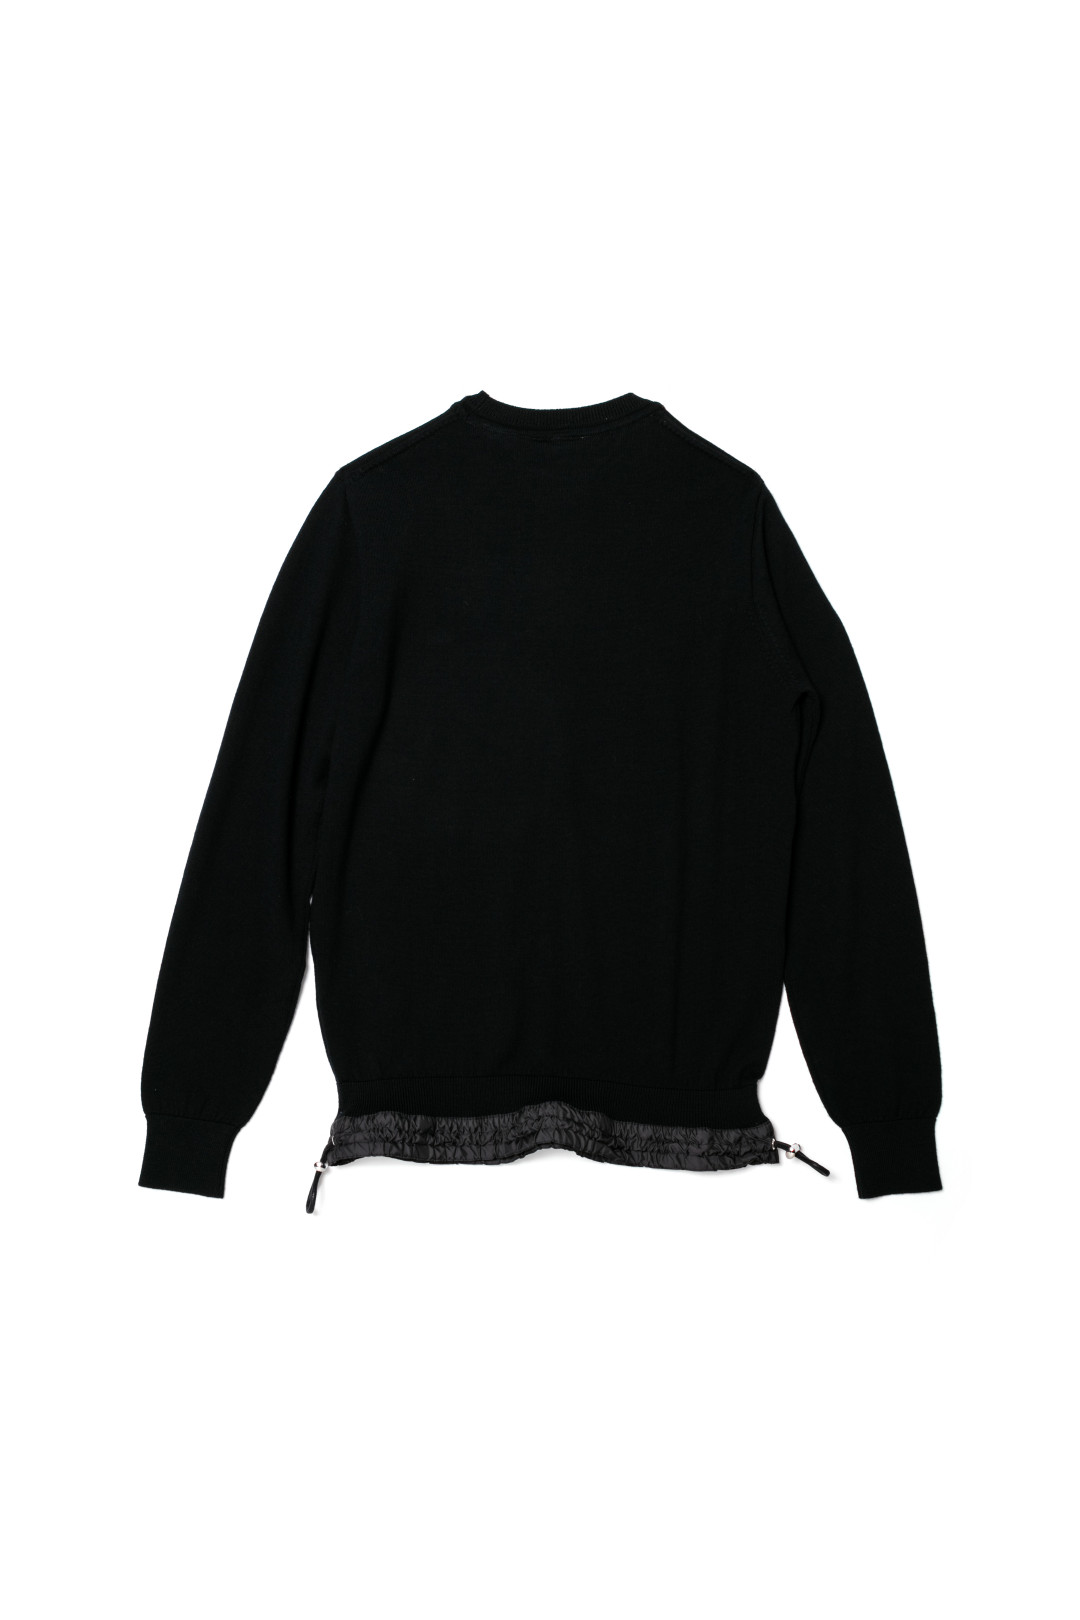 Long Sleeved pullover ブラック(3万8,000円)